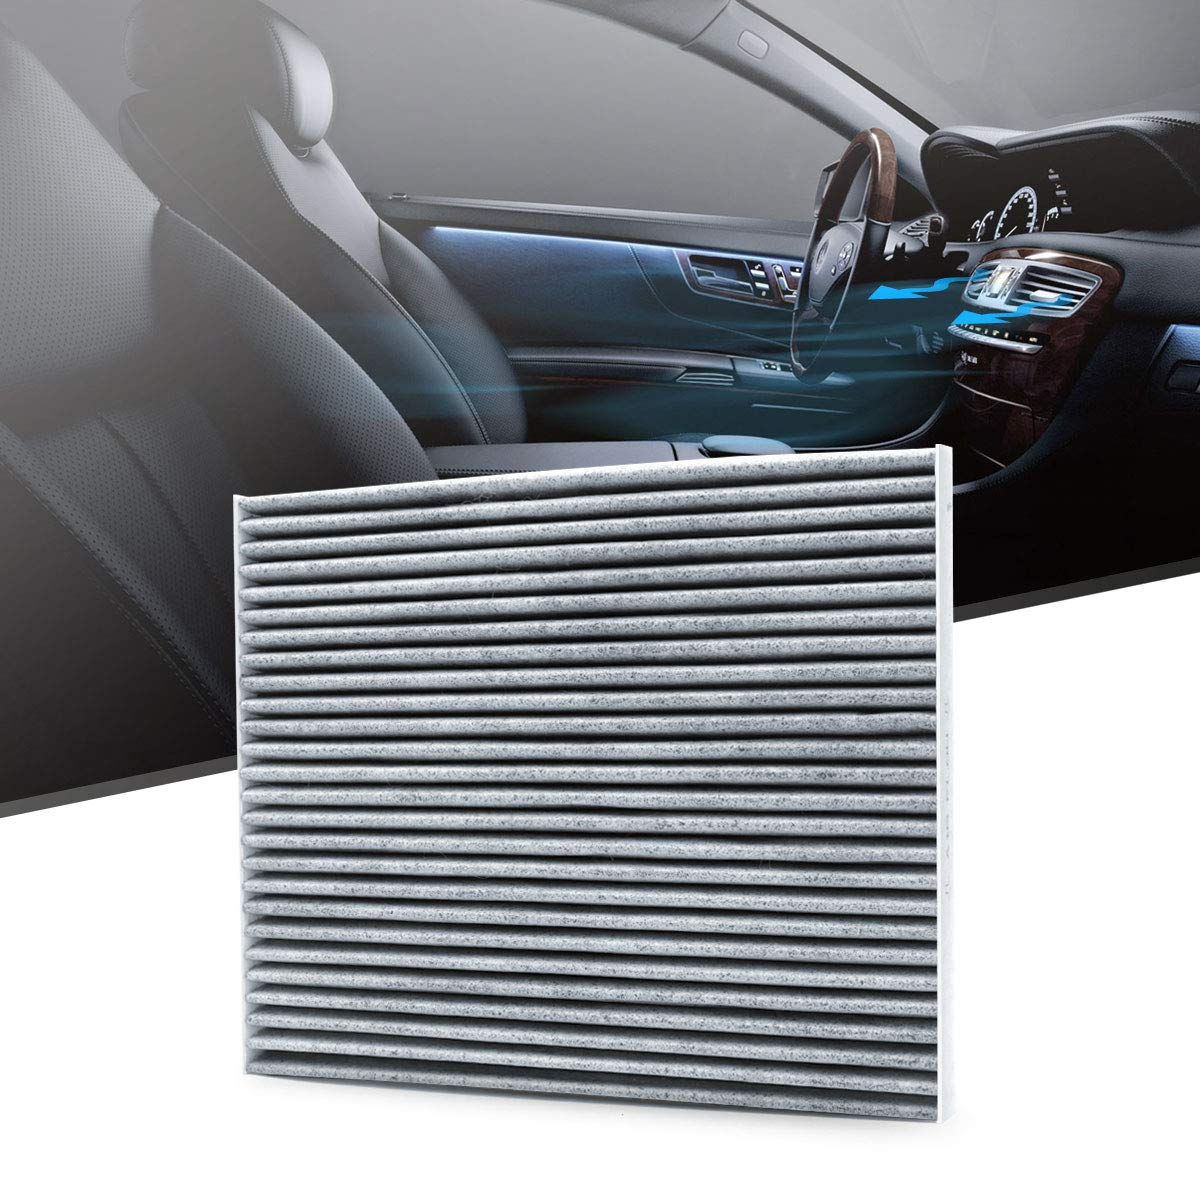 Replacement for FORD//LINCOLN DG9Z-19N619-A includes Activated Carbon DG9Z-19N619-AA DG9H-18D483-AA KAFEEK Cabin Air Filter Fits CF11775